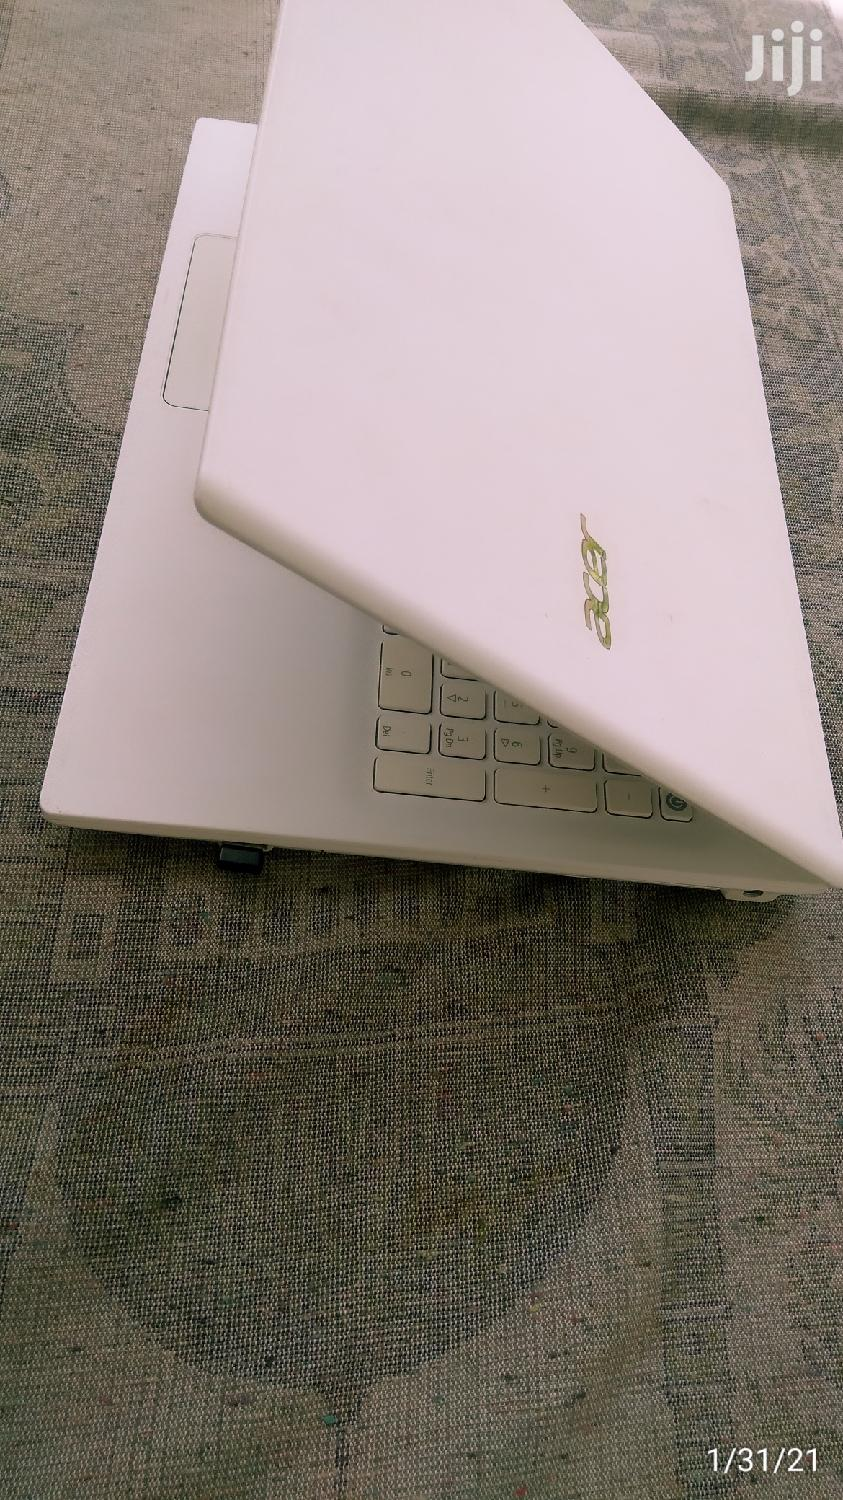 Archive: Laptop Acer Aspire E5-573 8GB Intel Core I5 HDD 500GB